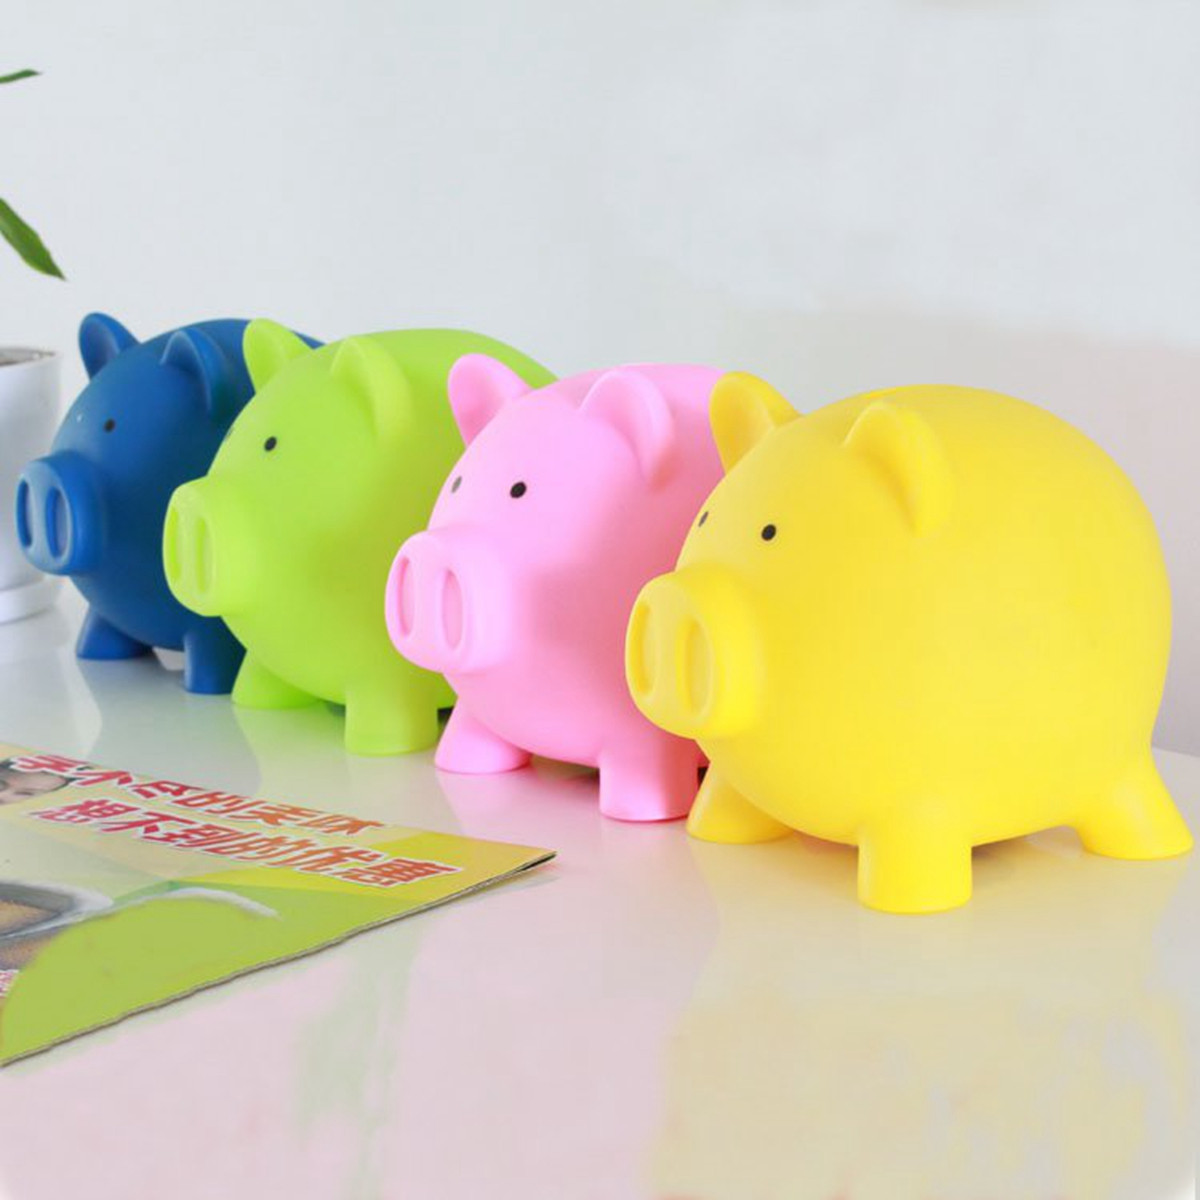 Coin Piggy Bank Toy Piggy Bank Money Pig Toy Saving Cash Coin Box Collection